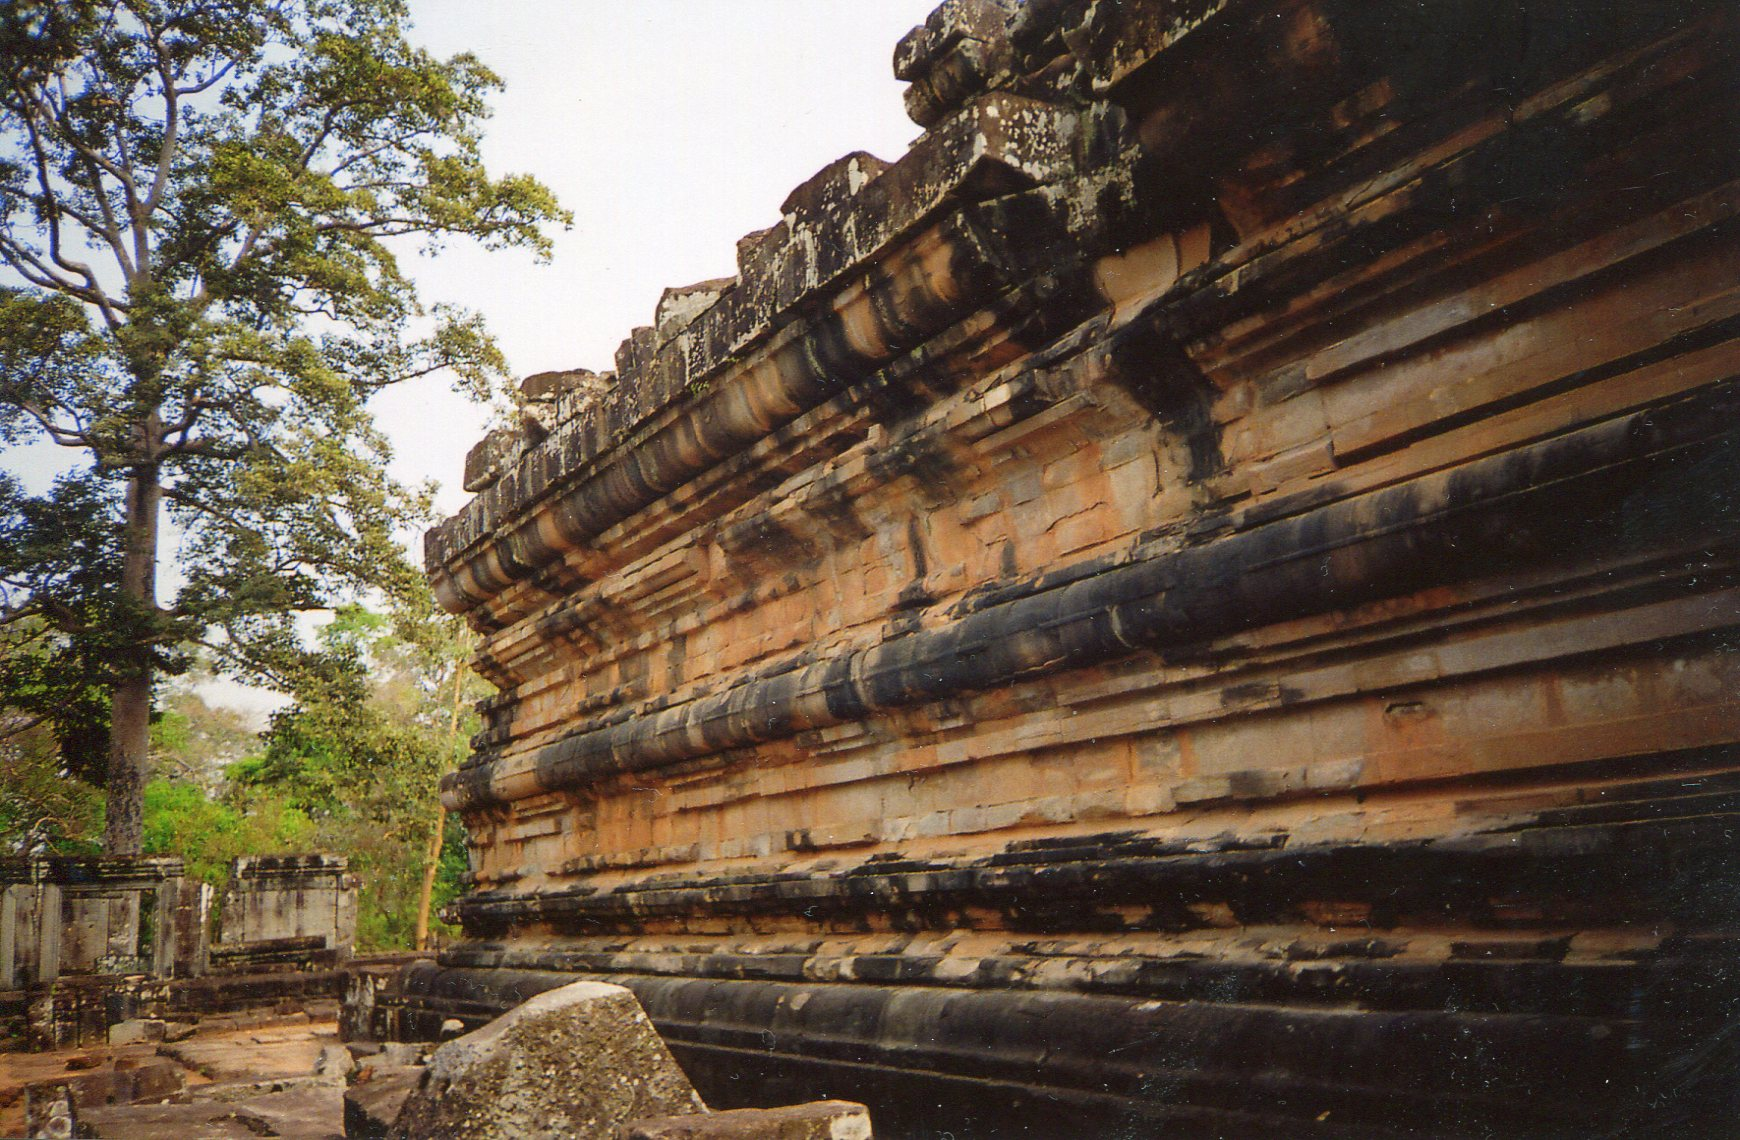 Khmer Empire Temples And The Khmer Empire